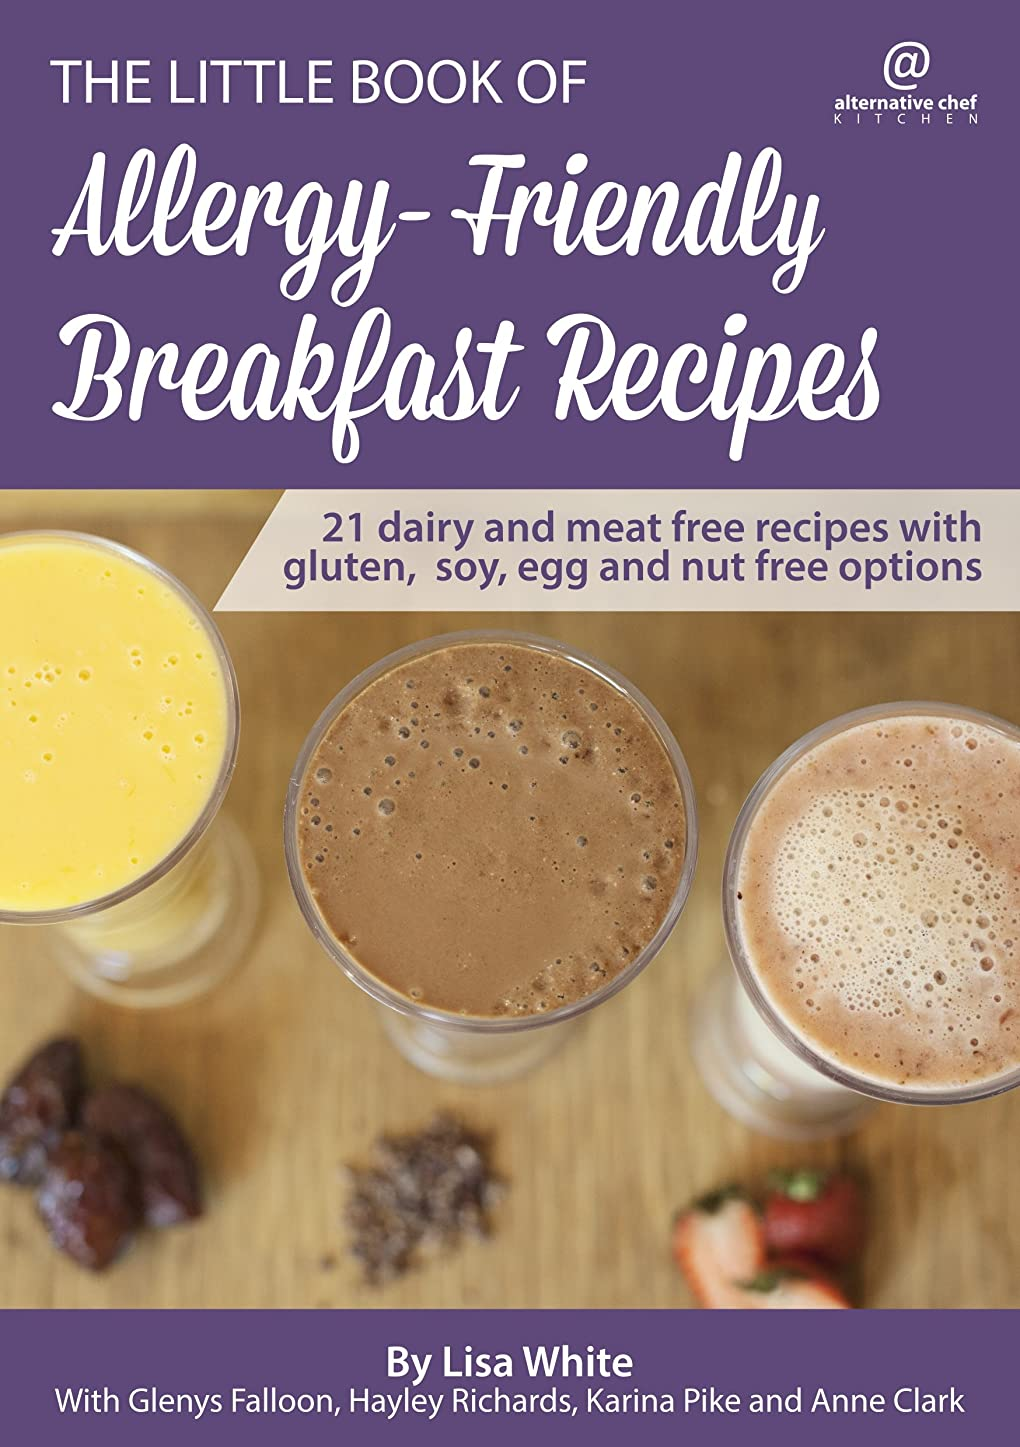 Breakfast Recipes: 21 Dairy and meat free recipes with gluten, soy, egg and nut free options (The Little Book of Allergy-Friendly Recipes) (English Edition)